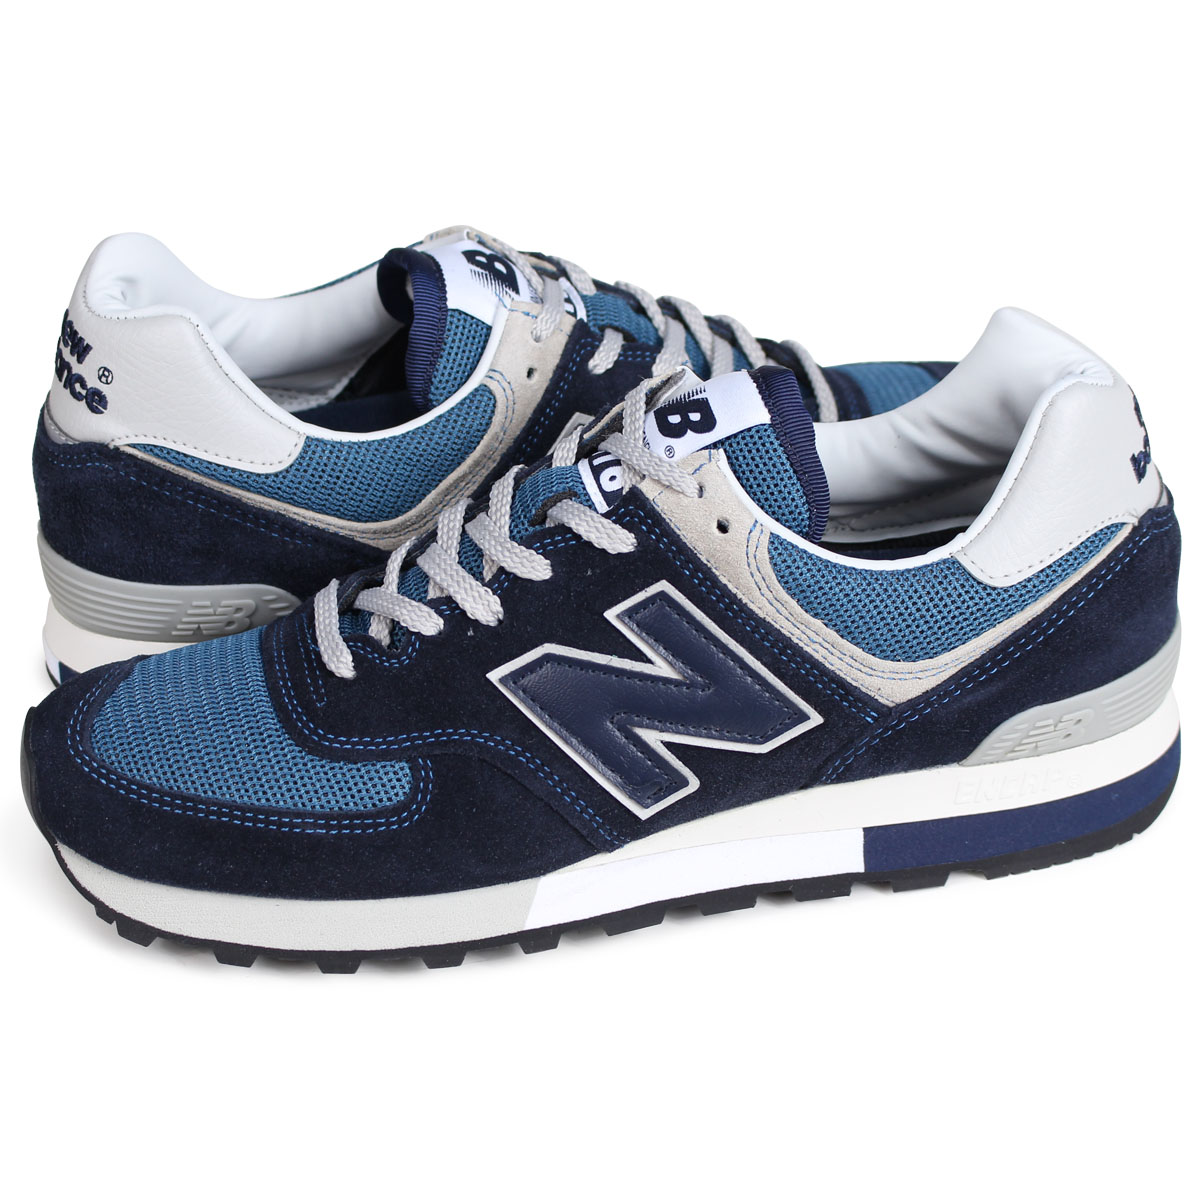 best sneakers 3af5f b4cb0 new balance OM576OGN New Balance 576 men's sneakers D Wise MADE IN UK navy